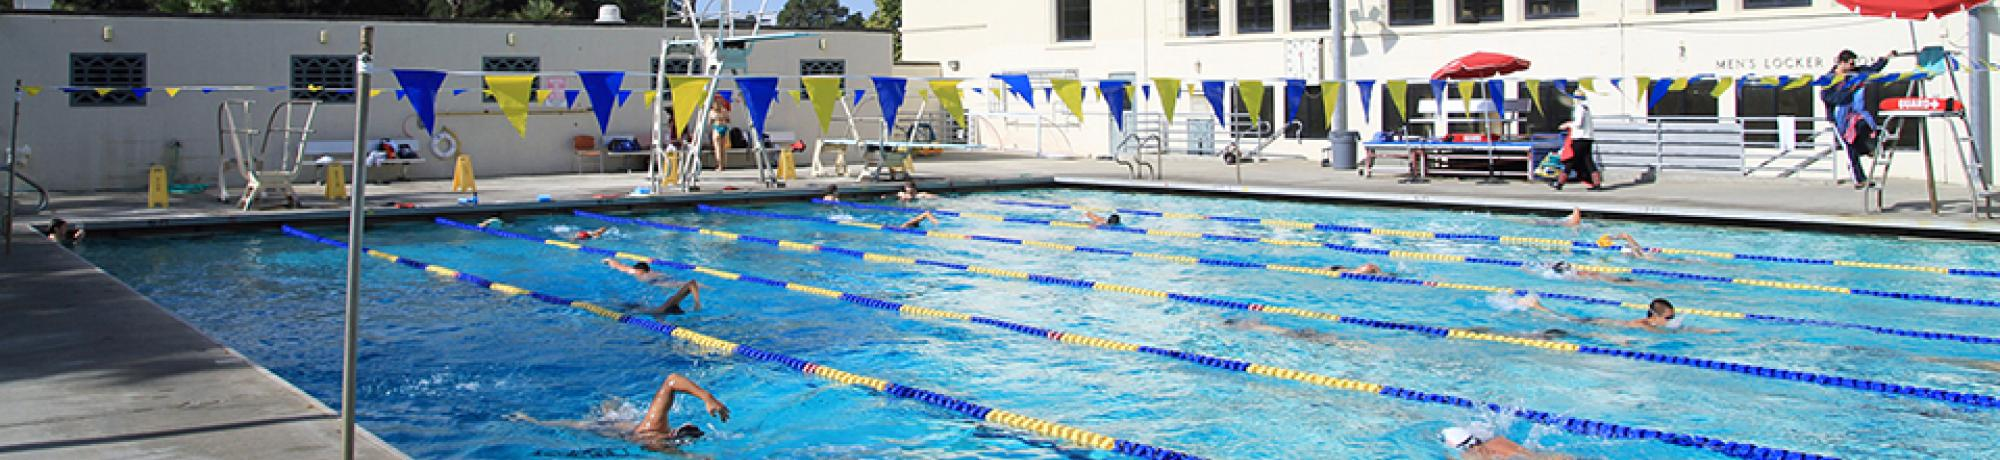 Hickey Pool   Campus Recreation